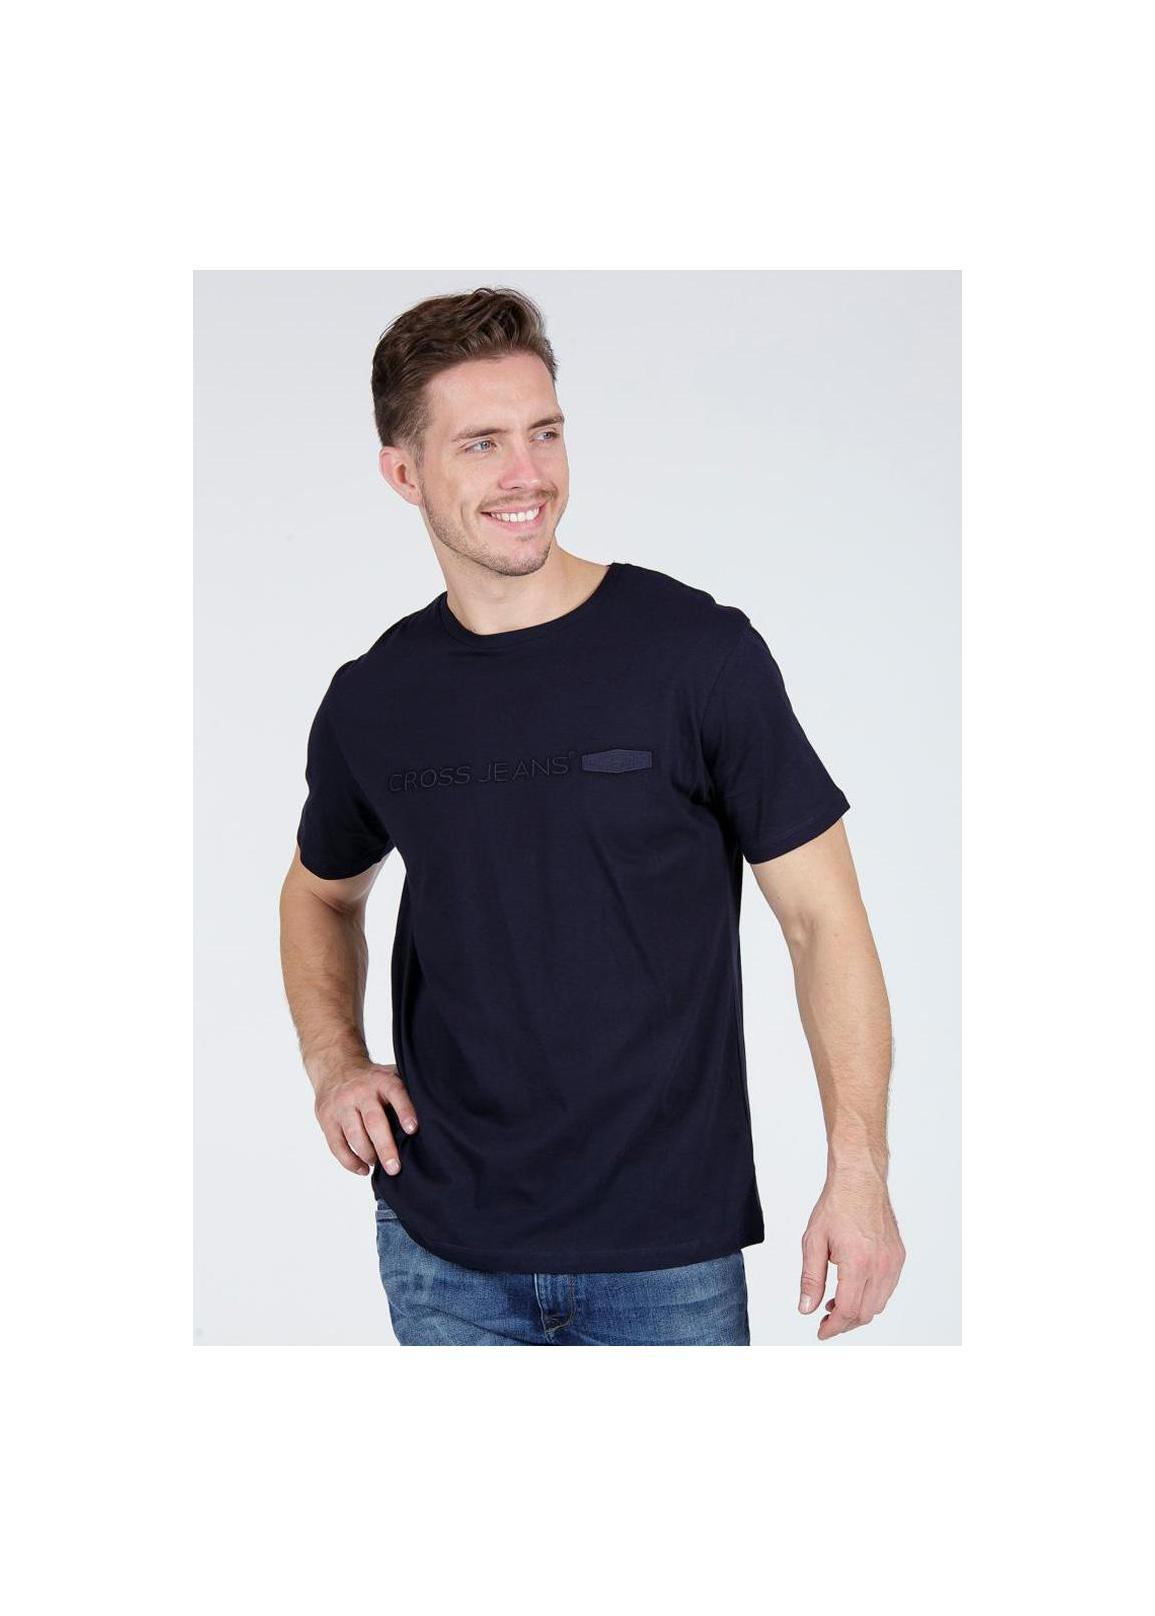 Cross Jeans® T-shirt C-Neck - Navy (001)